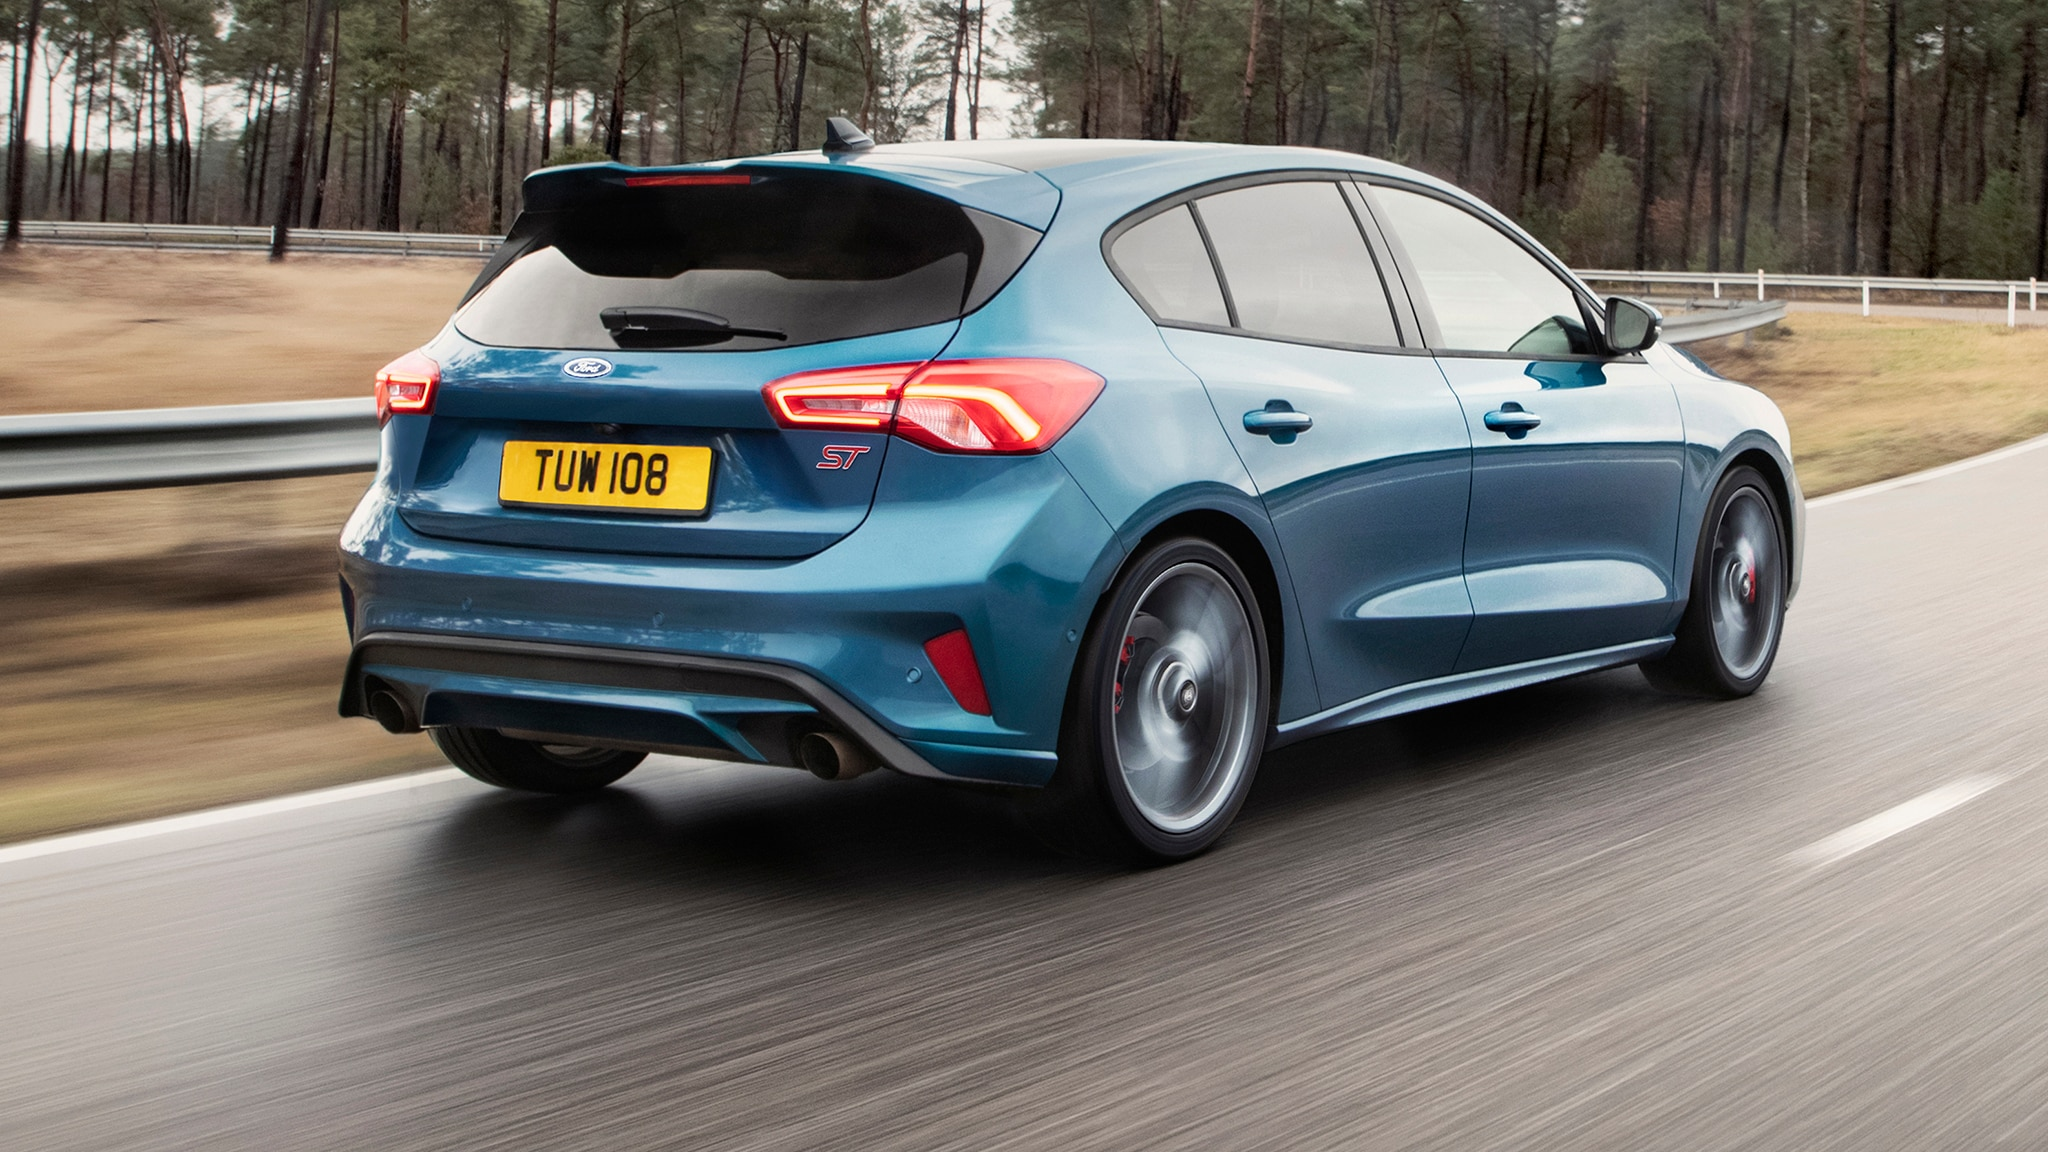 2019 Ford Focus St 276 Hp Sweet Looks Europe Only